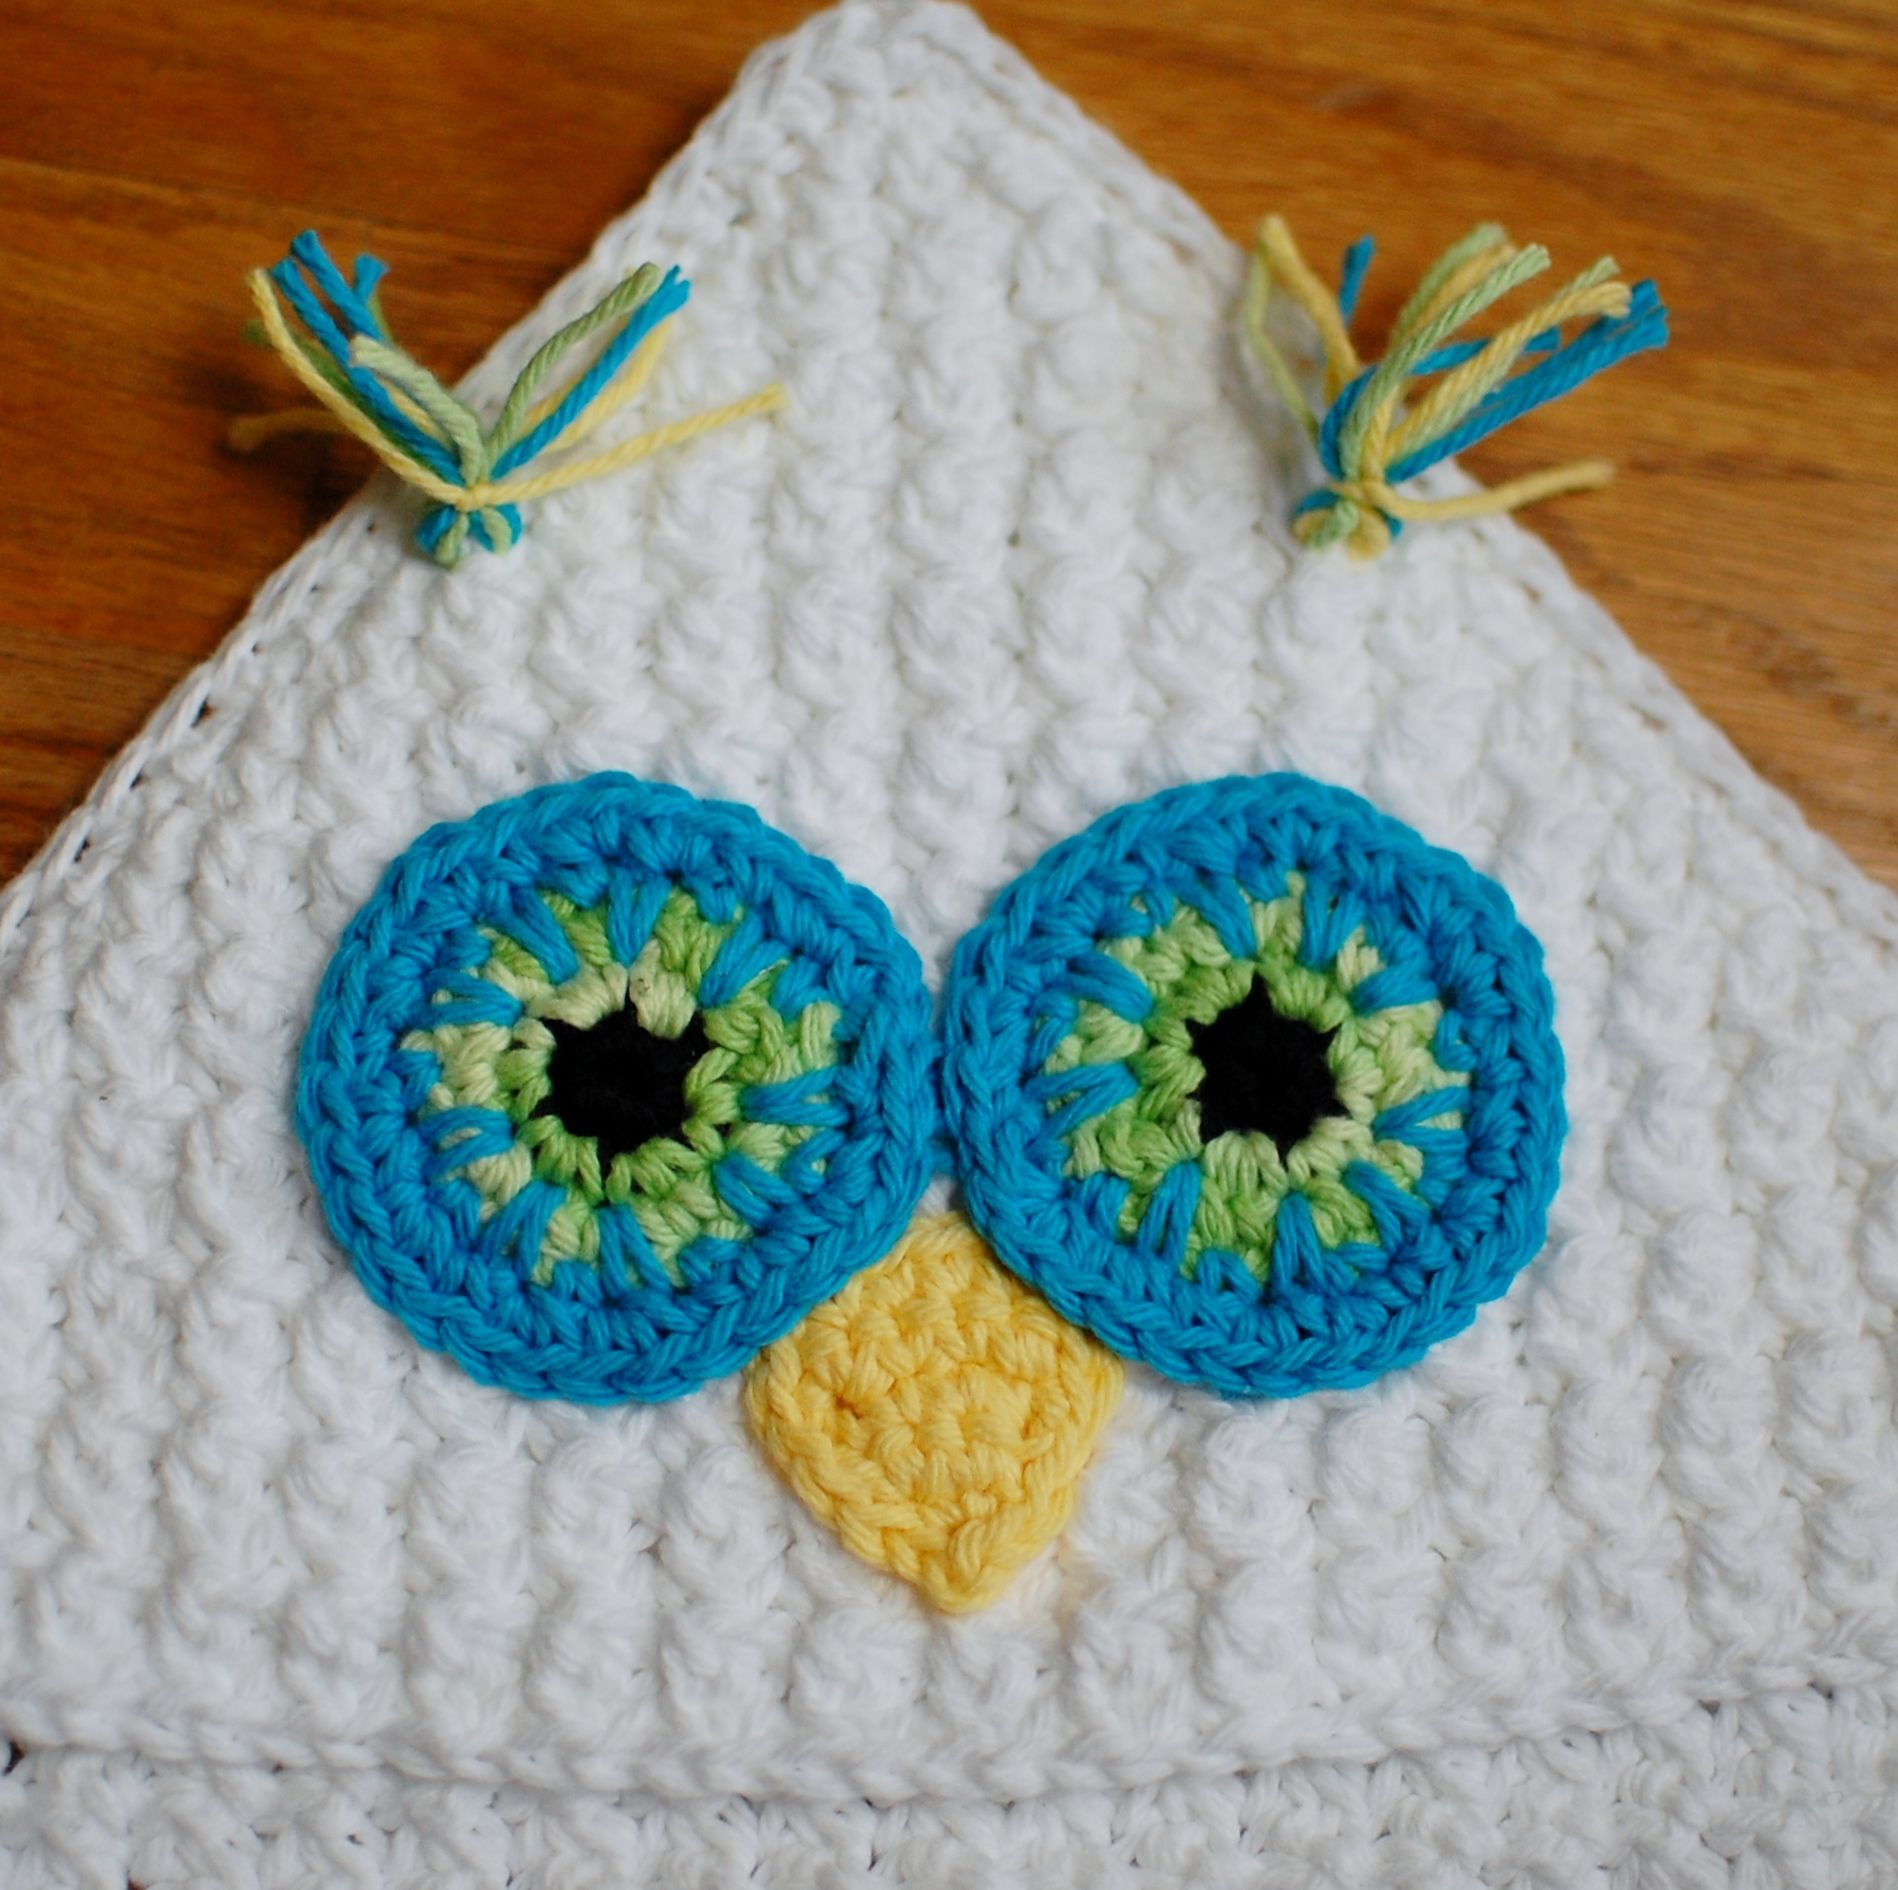 Crochet Pattern Owl Hooded Baby Towel Also Makes A Great Hooded